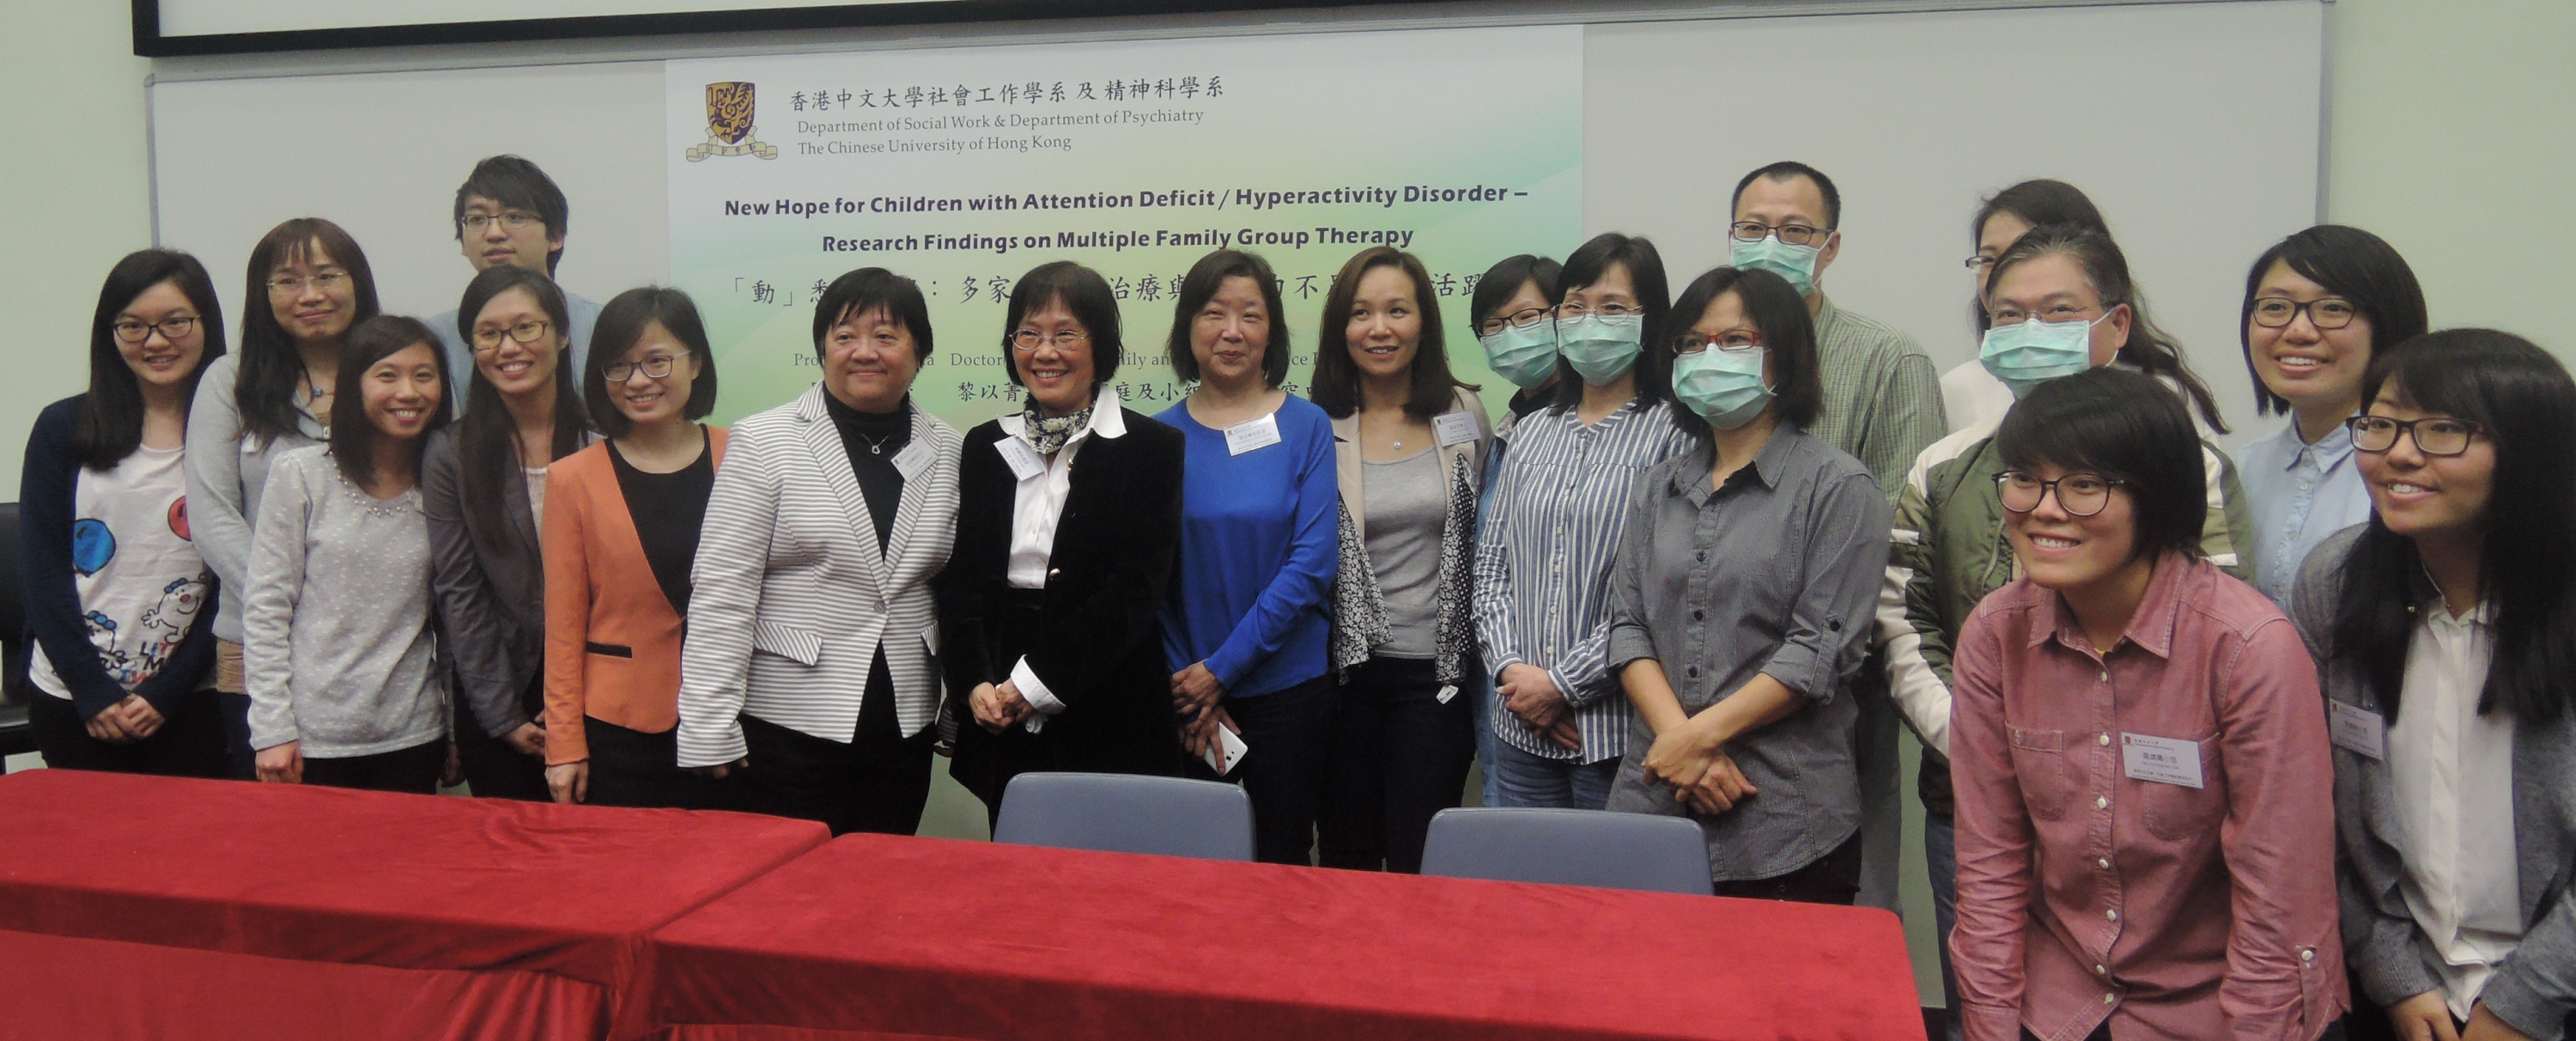 The research team led by Prof. MA Lai-chong of the Department of Social Work and Prof. LAI Yee-ching, Associate Professor of the Department of Psychiatry, CUHK poses for a group photo with participating parents of Multiple Family Group Therapy (MFGT).